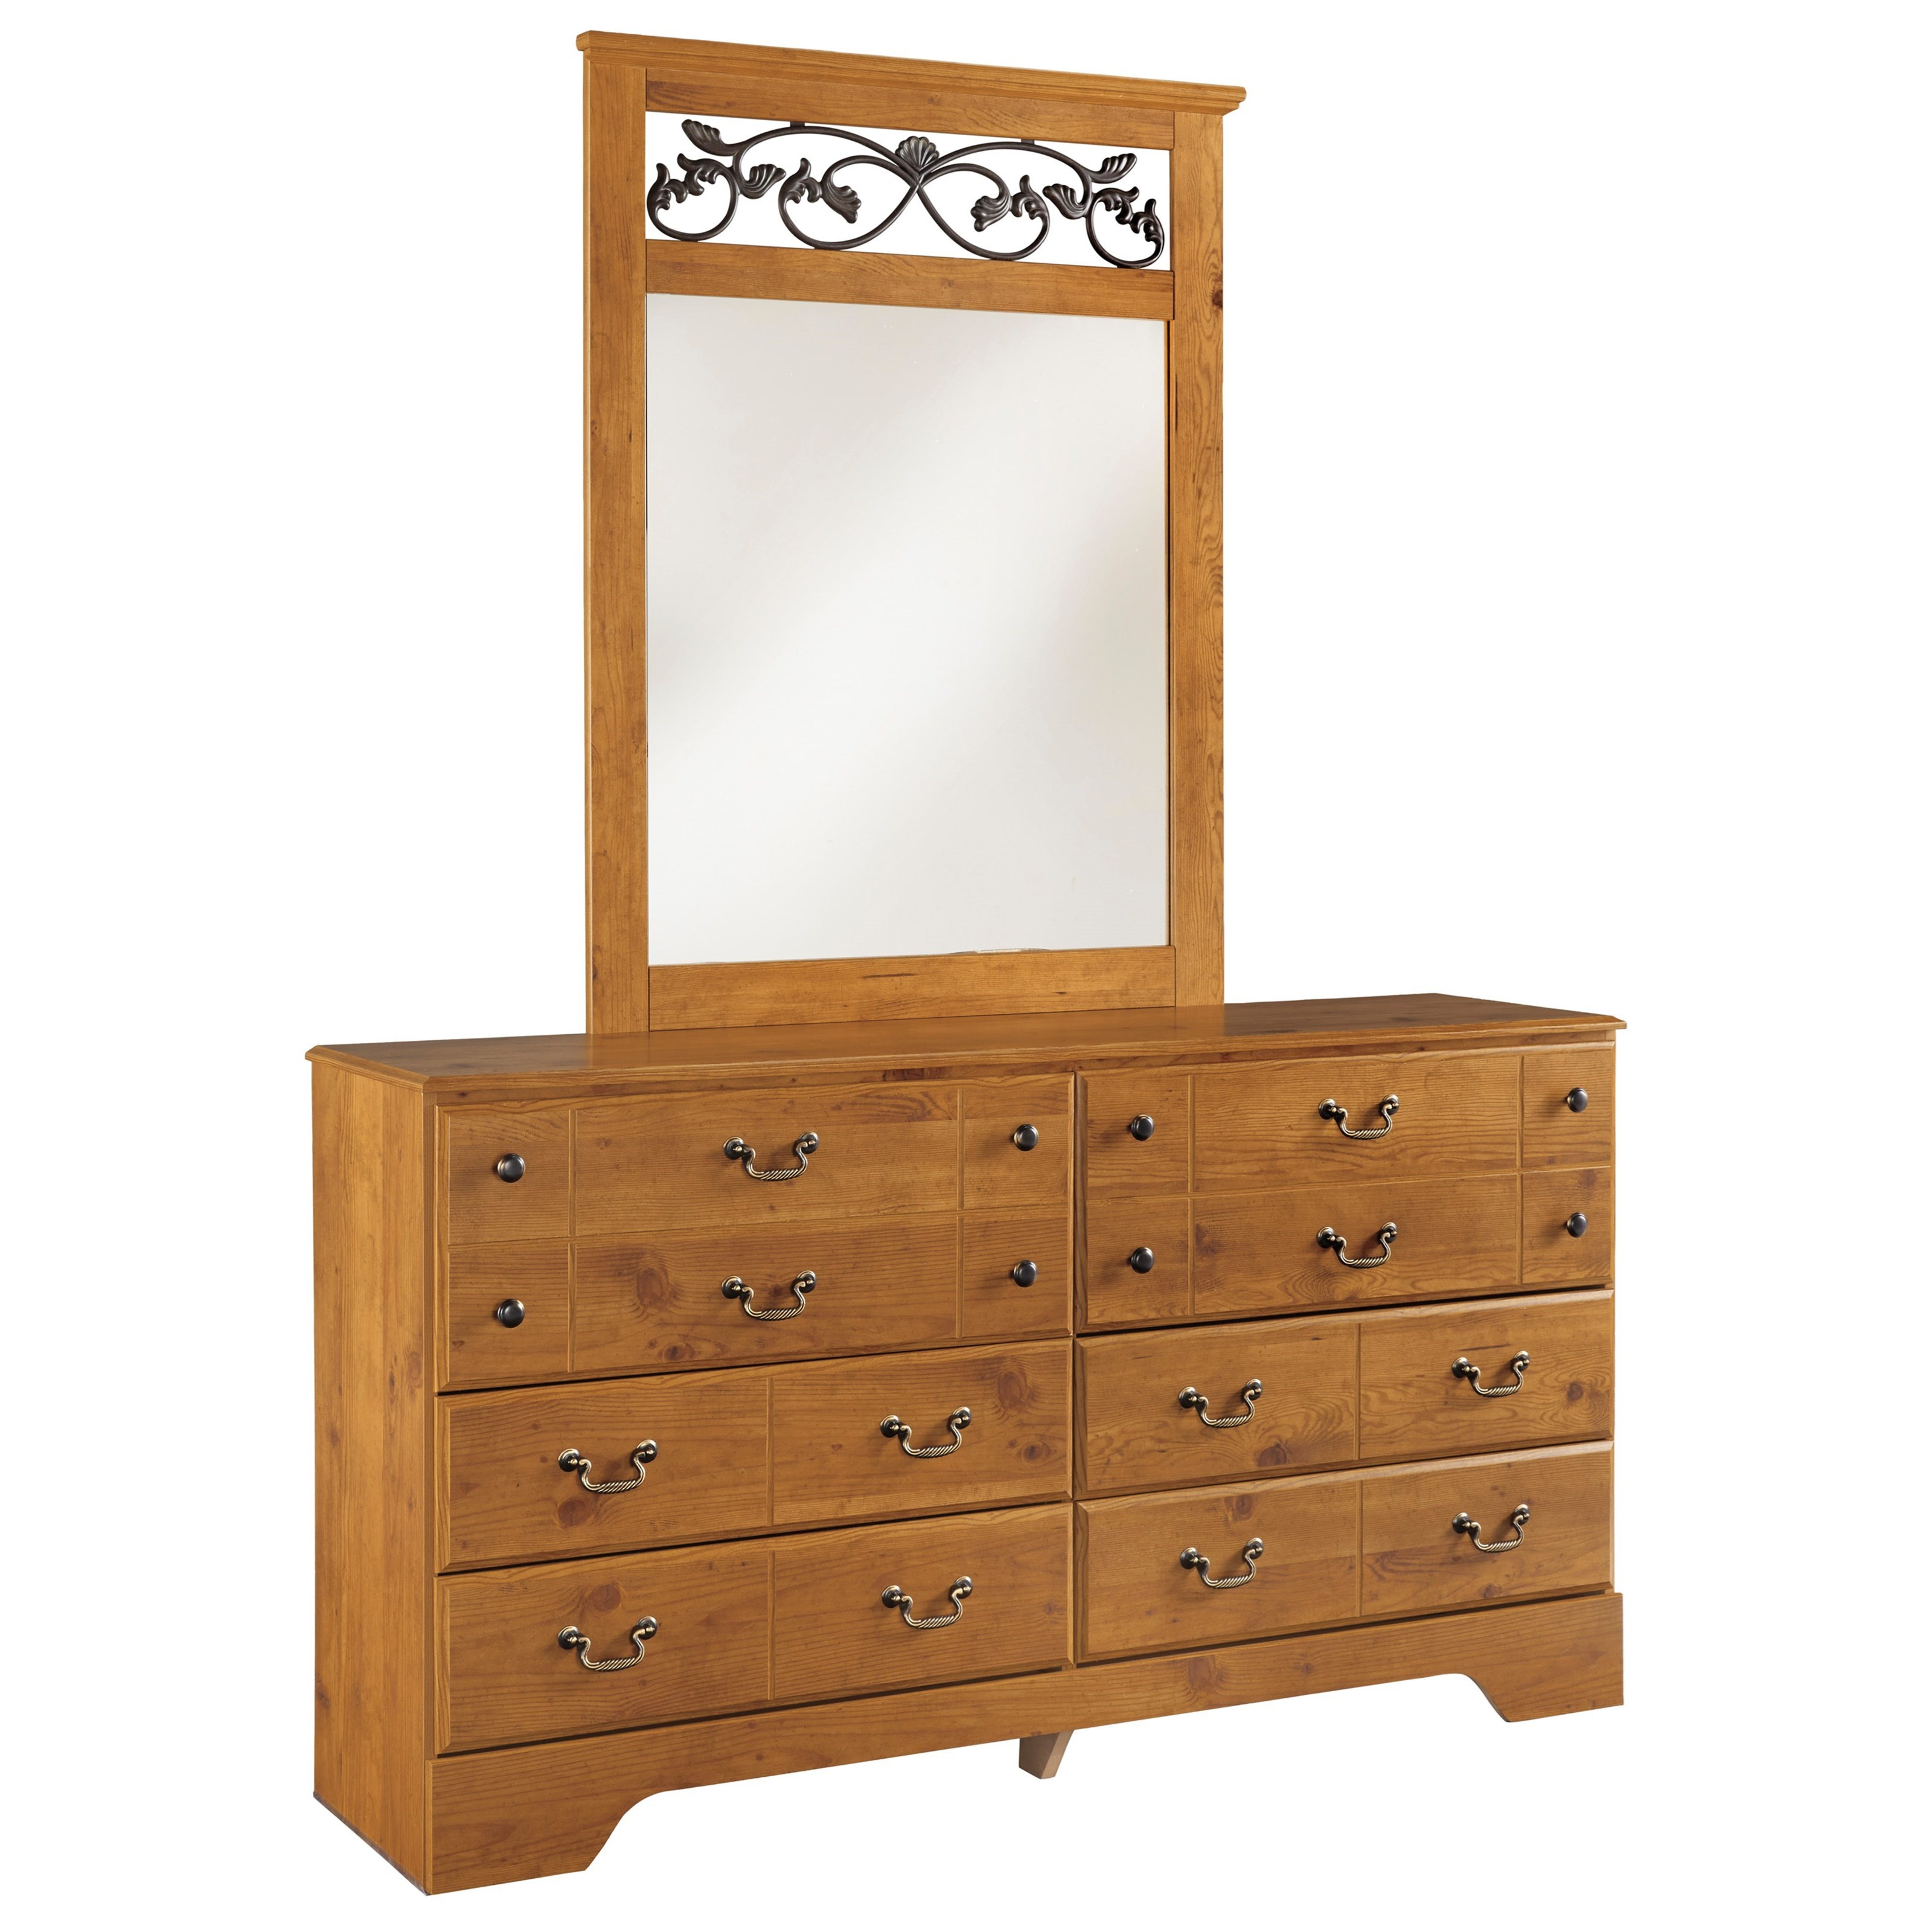 Bittersweet 6 Drawer Dresser and Mirror by Signature Design by Ashley at Lindy's Furniture Company